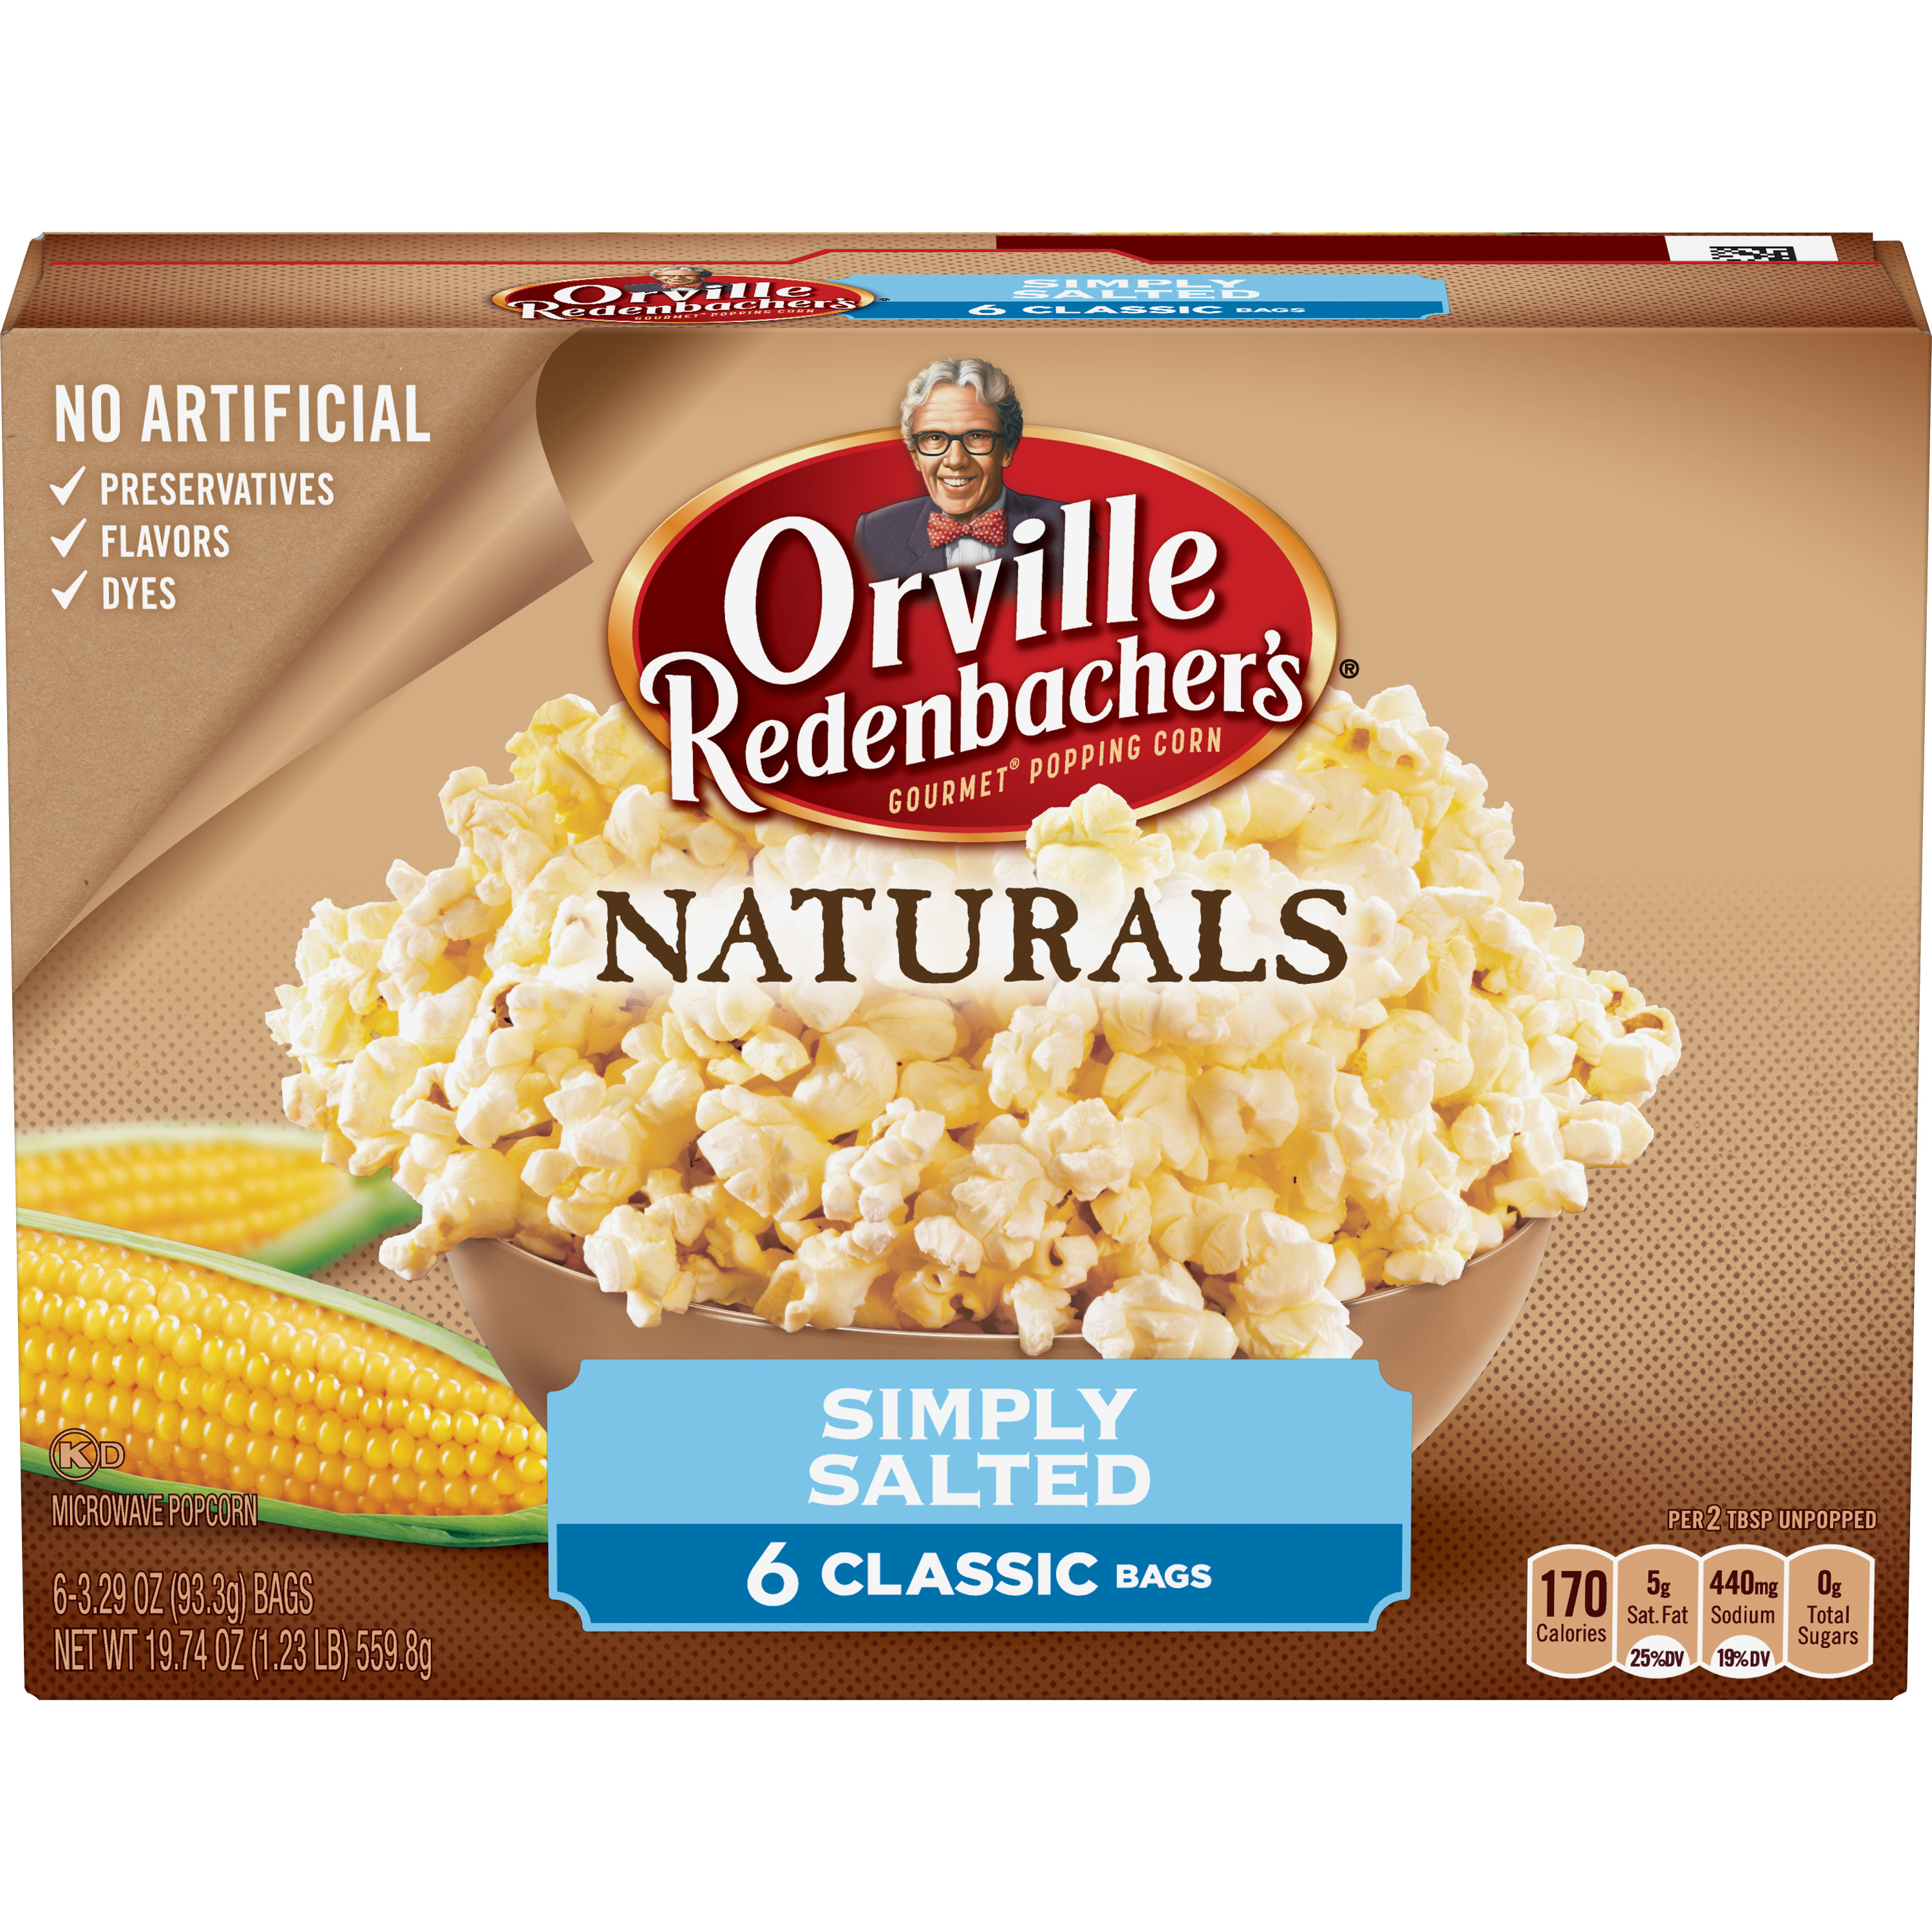 (4 Pack) Orville Redenbacher's Microwave Popcorn, Natural, Simply Salted, 3.29 Oz, 6 Ct